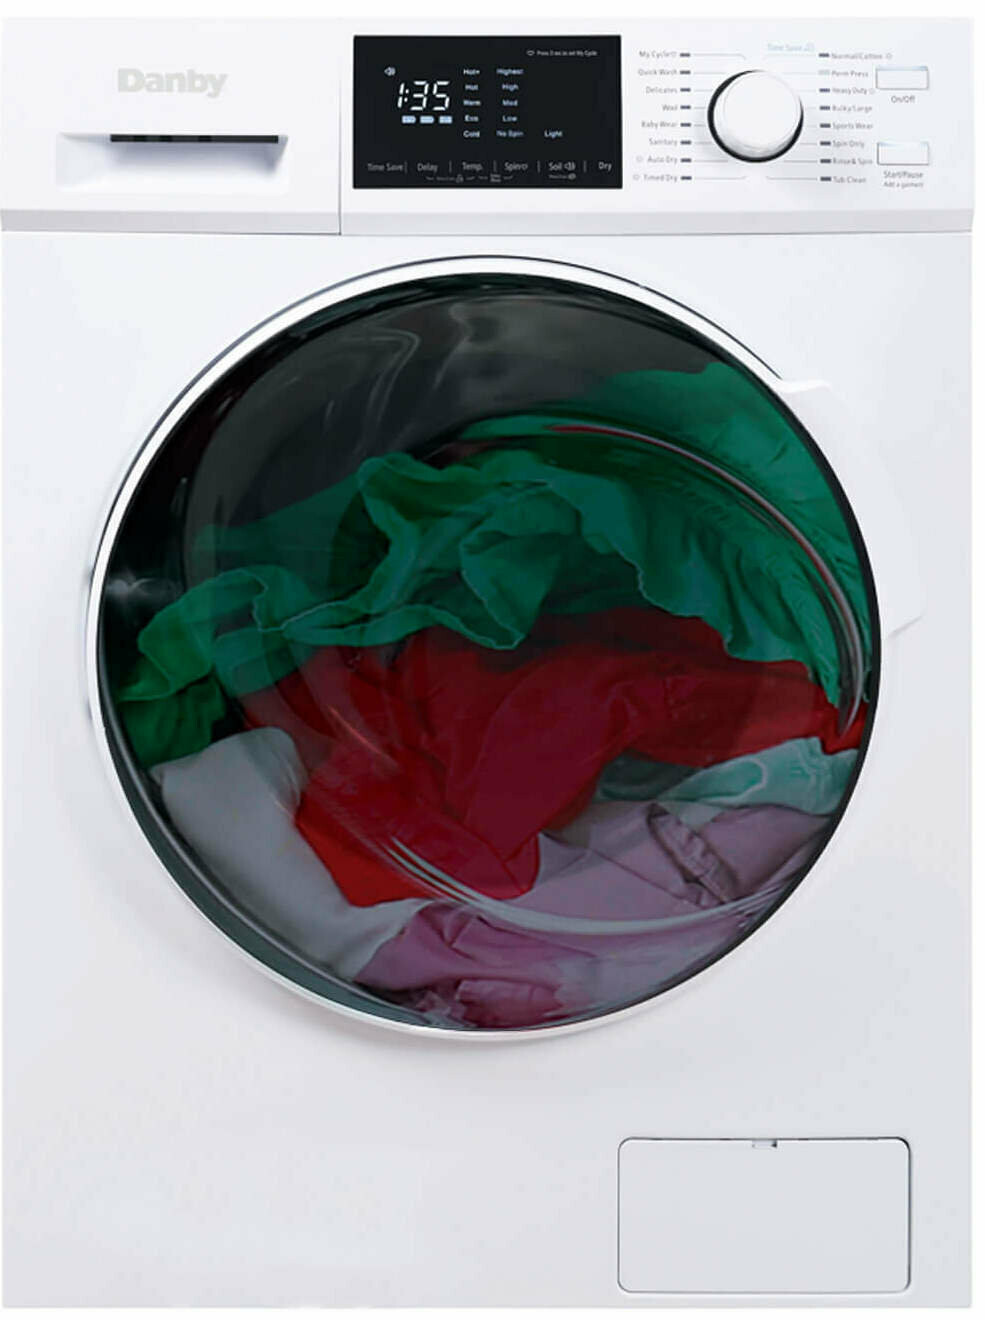 Danby 2.7 cu. ft. All-In-One Ventless Washer Dryer Combo (DWM120WDB-3)